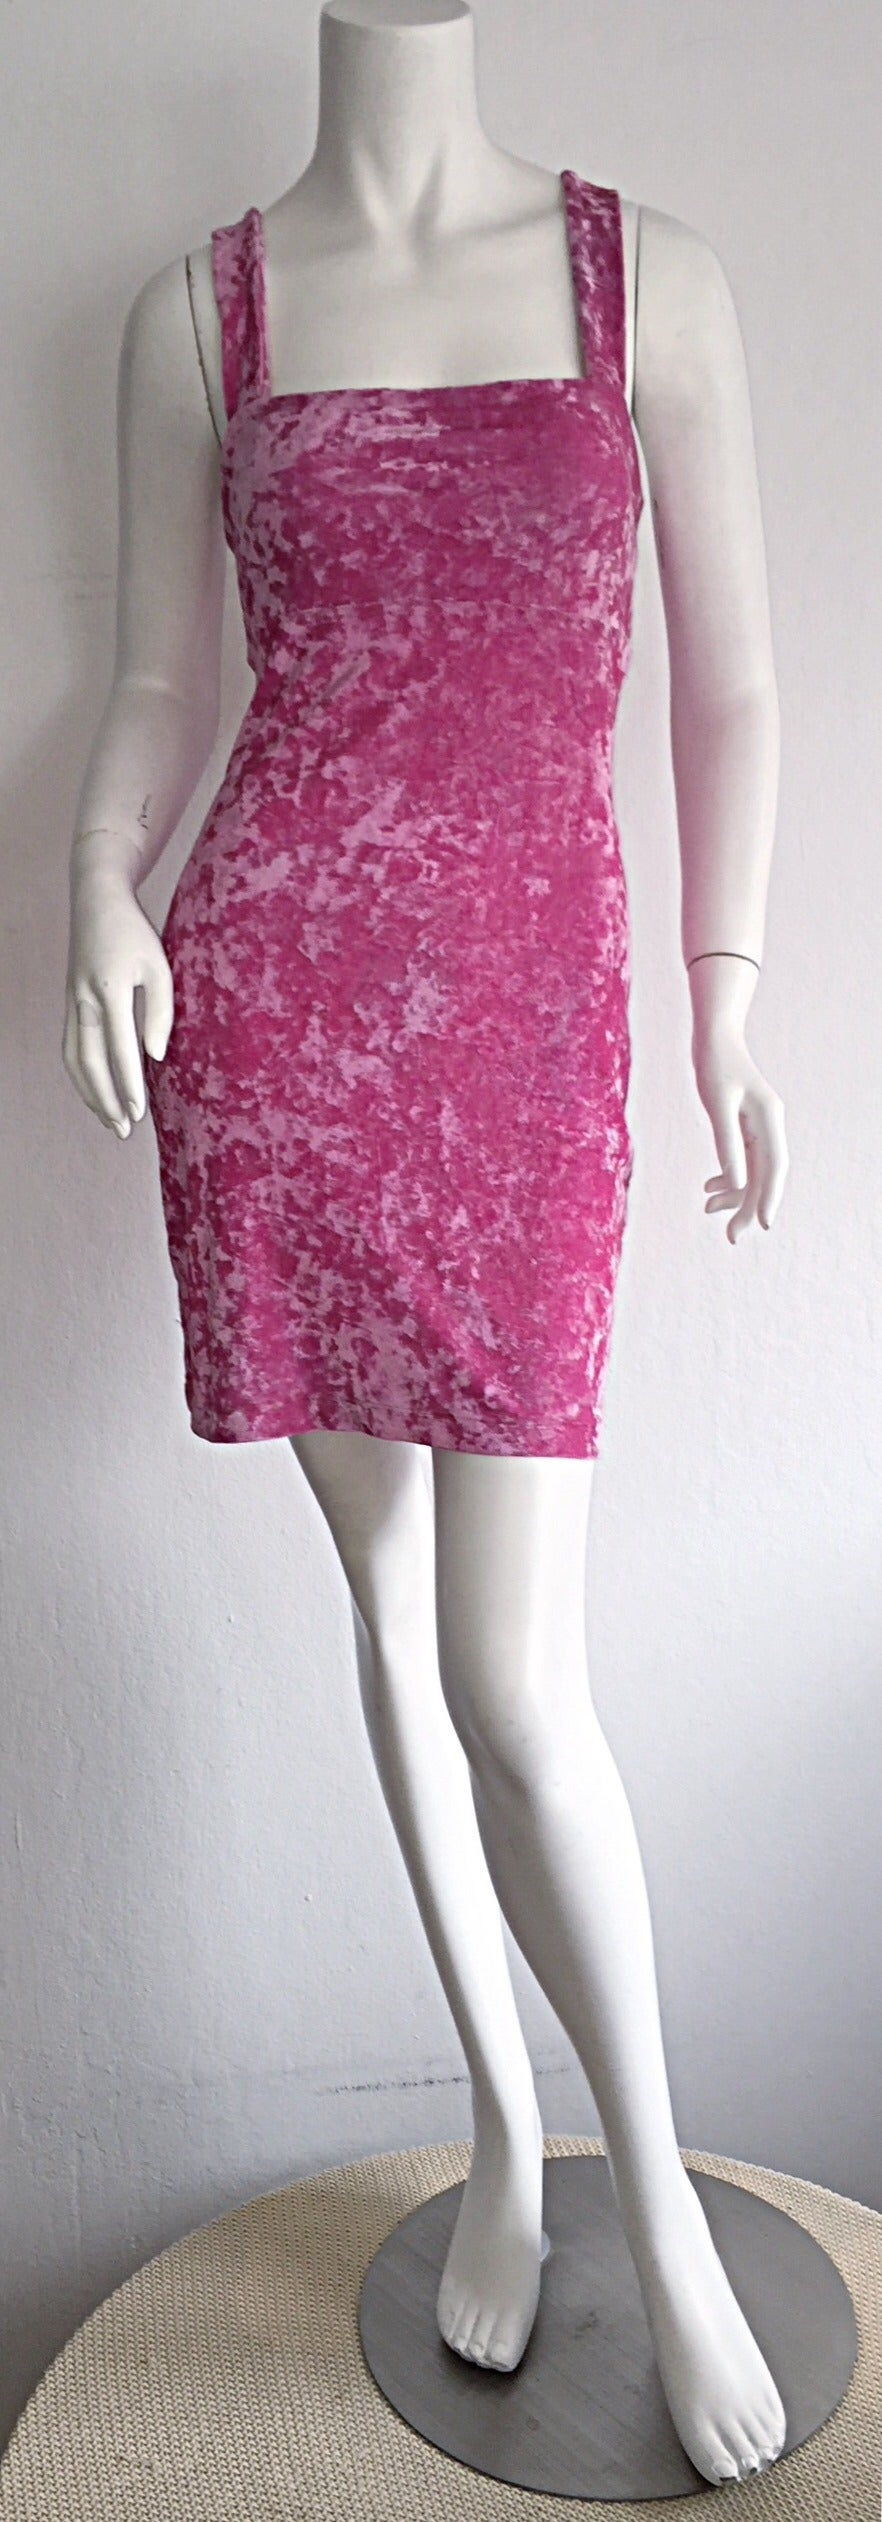 Iconic 1990s Vintage Betsey Johnson ' Barbie ' Crushed Velveteen Bodycon Dress 2